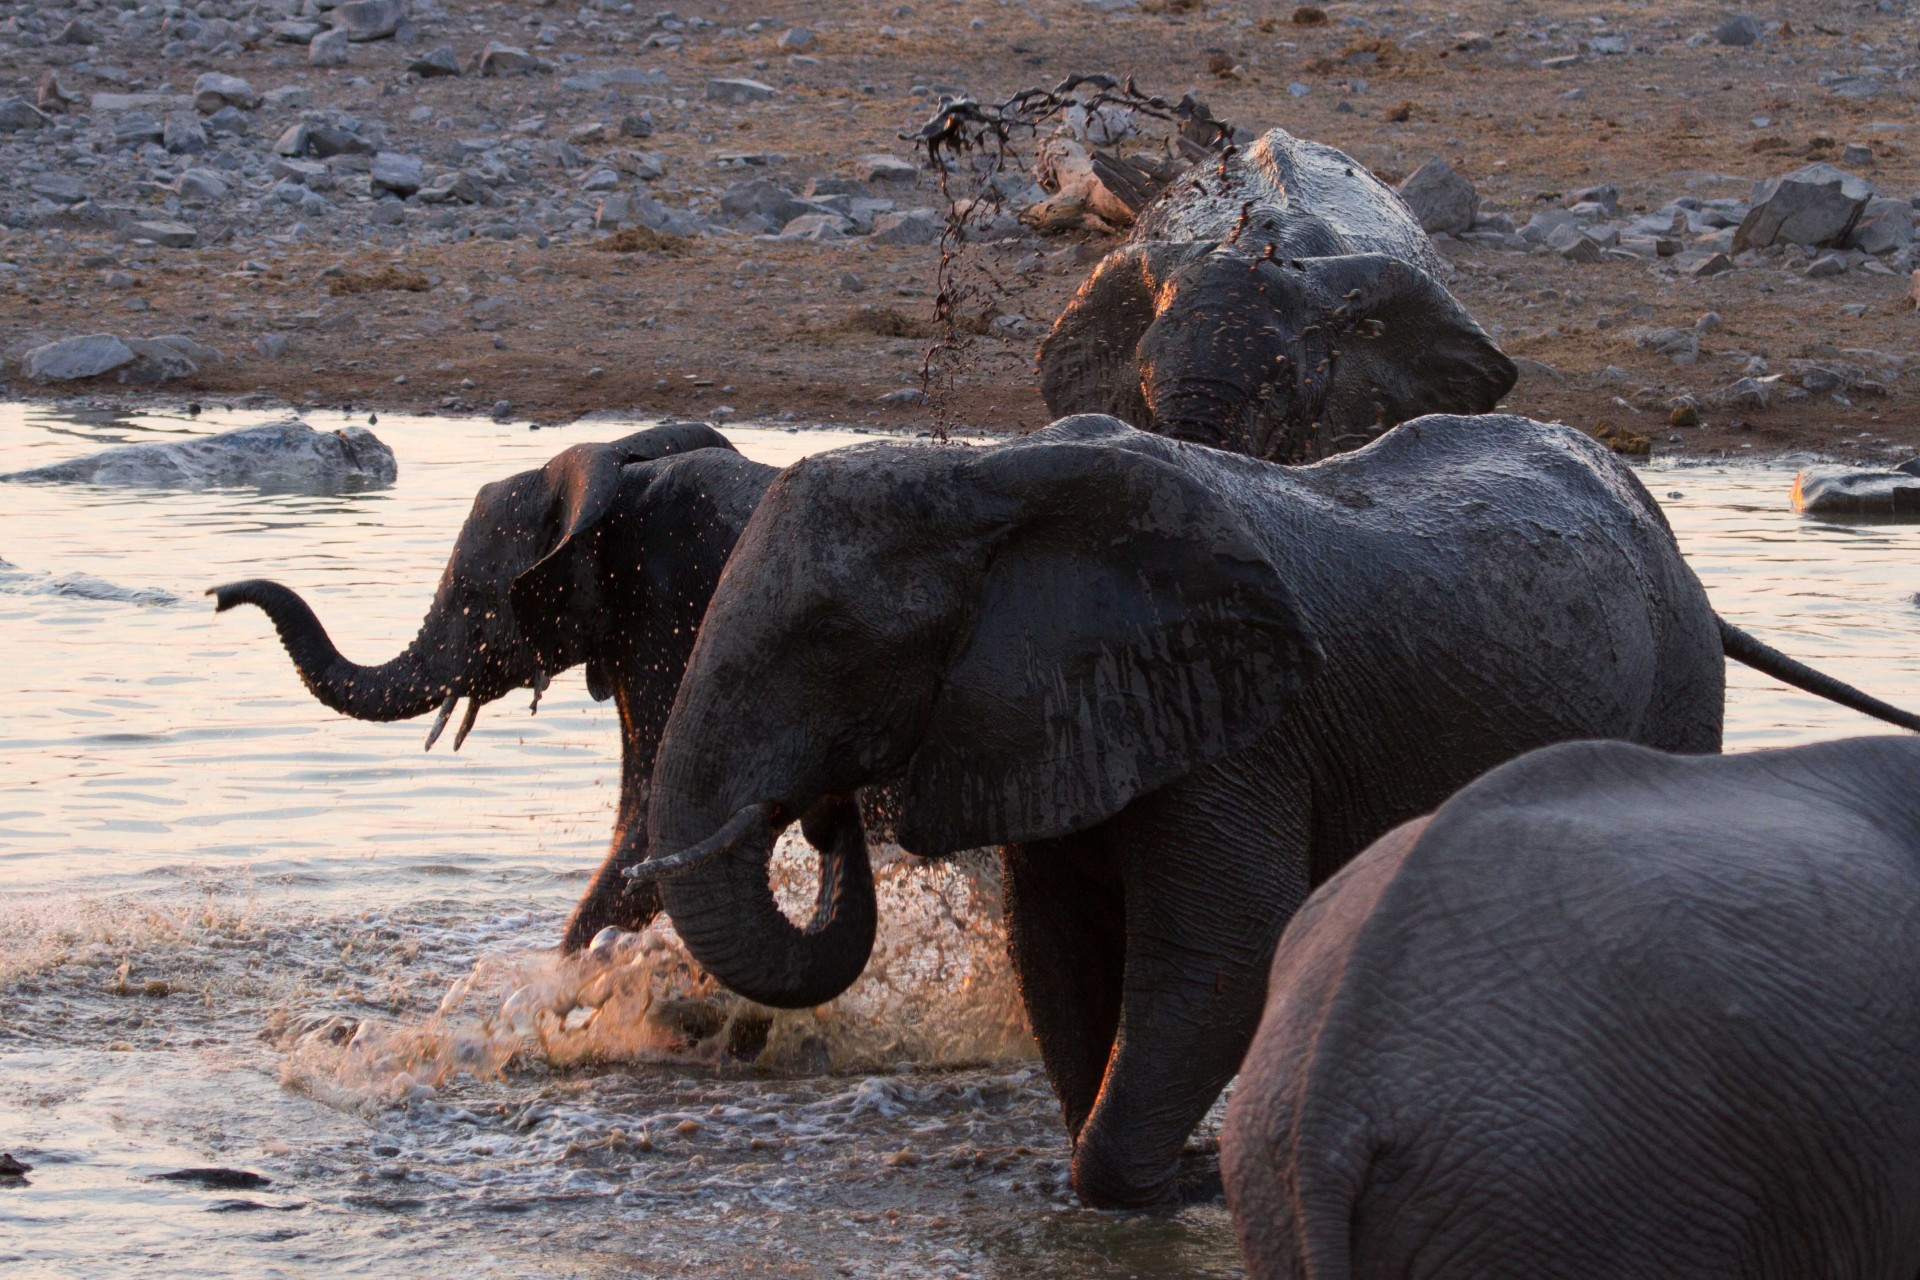 Elephants at the Halali Watering Hole, Etosha